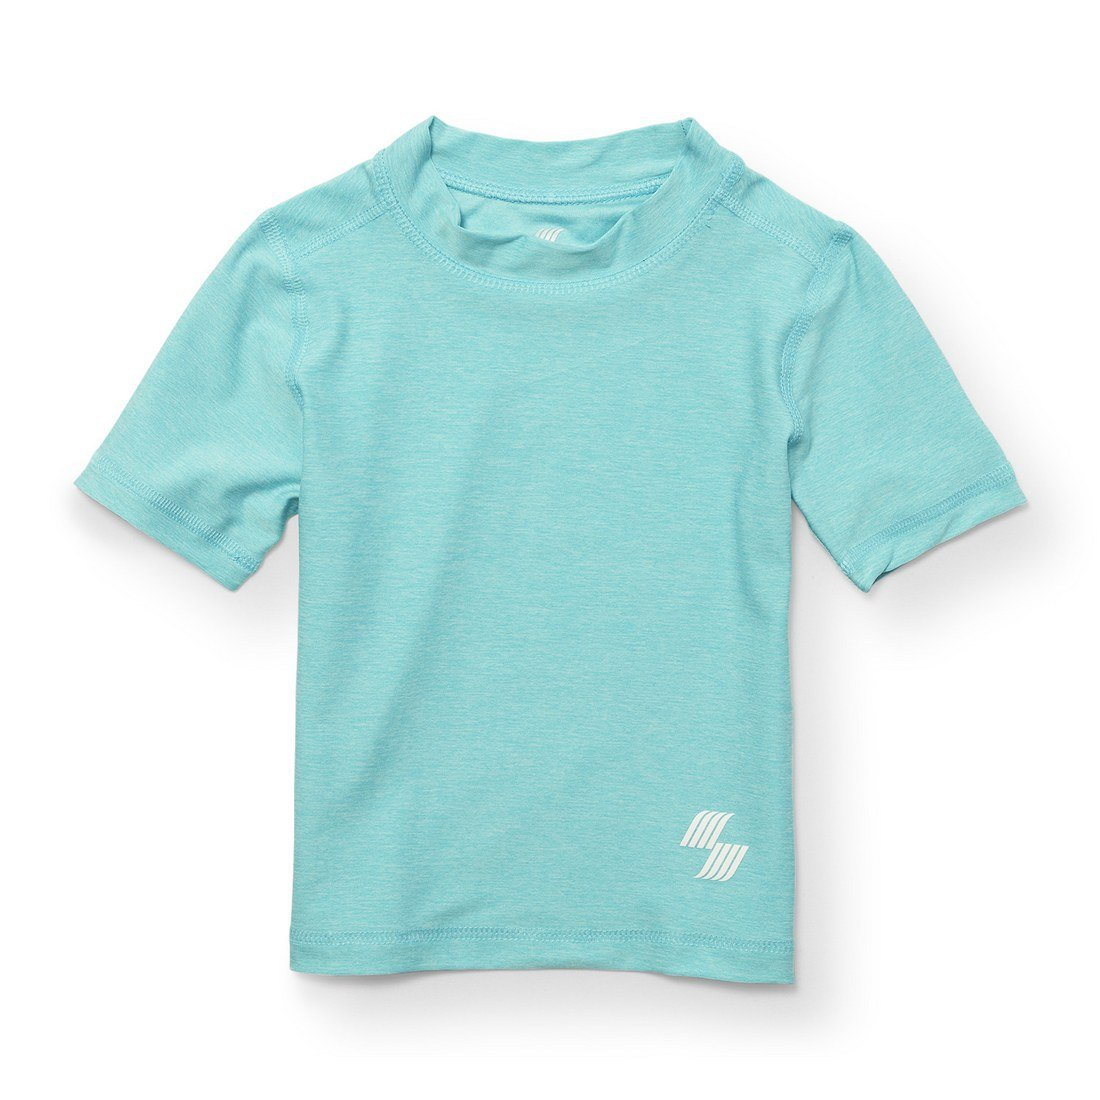 The Children's Place Boys' Short Sleeve Rashguard 2063579